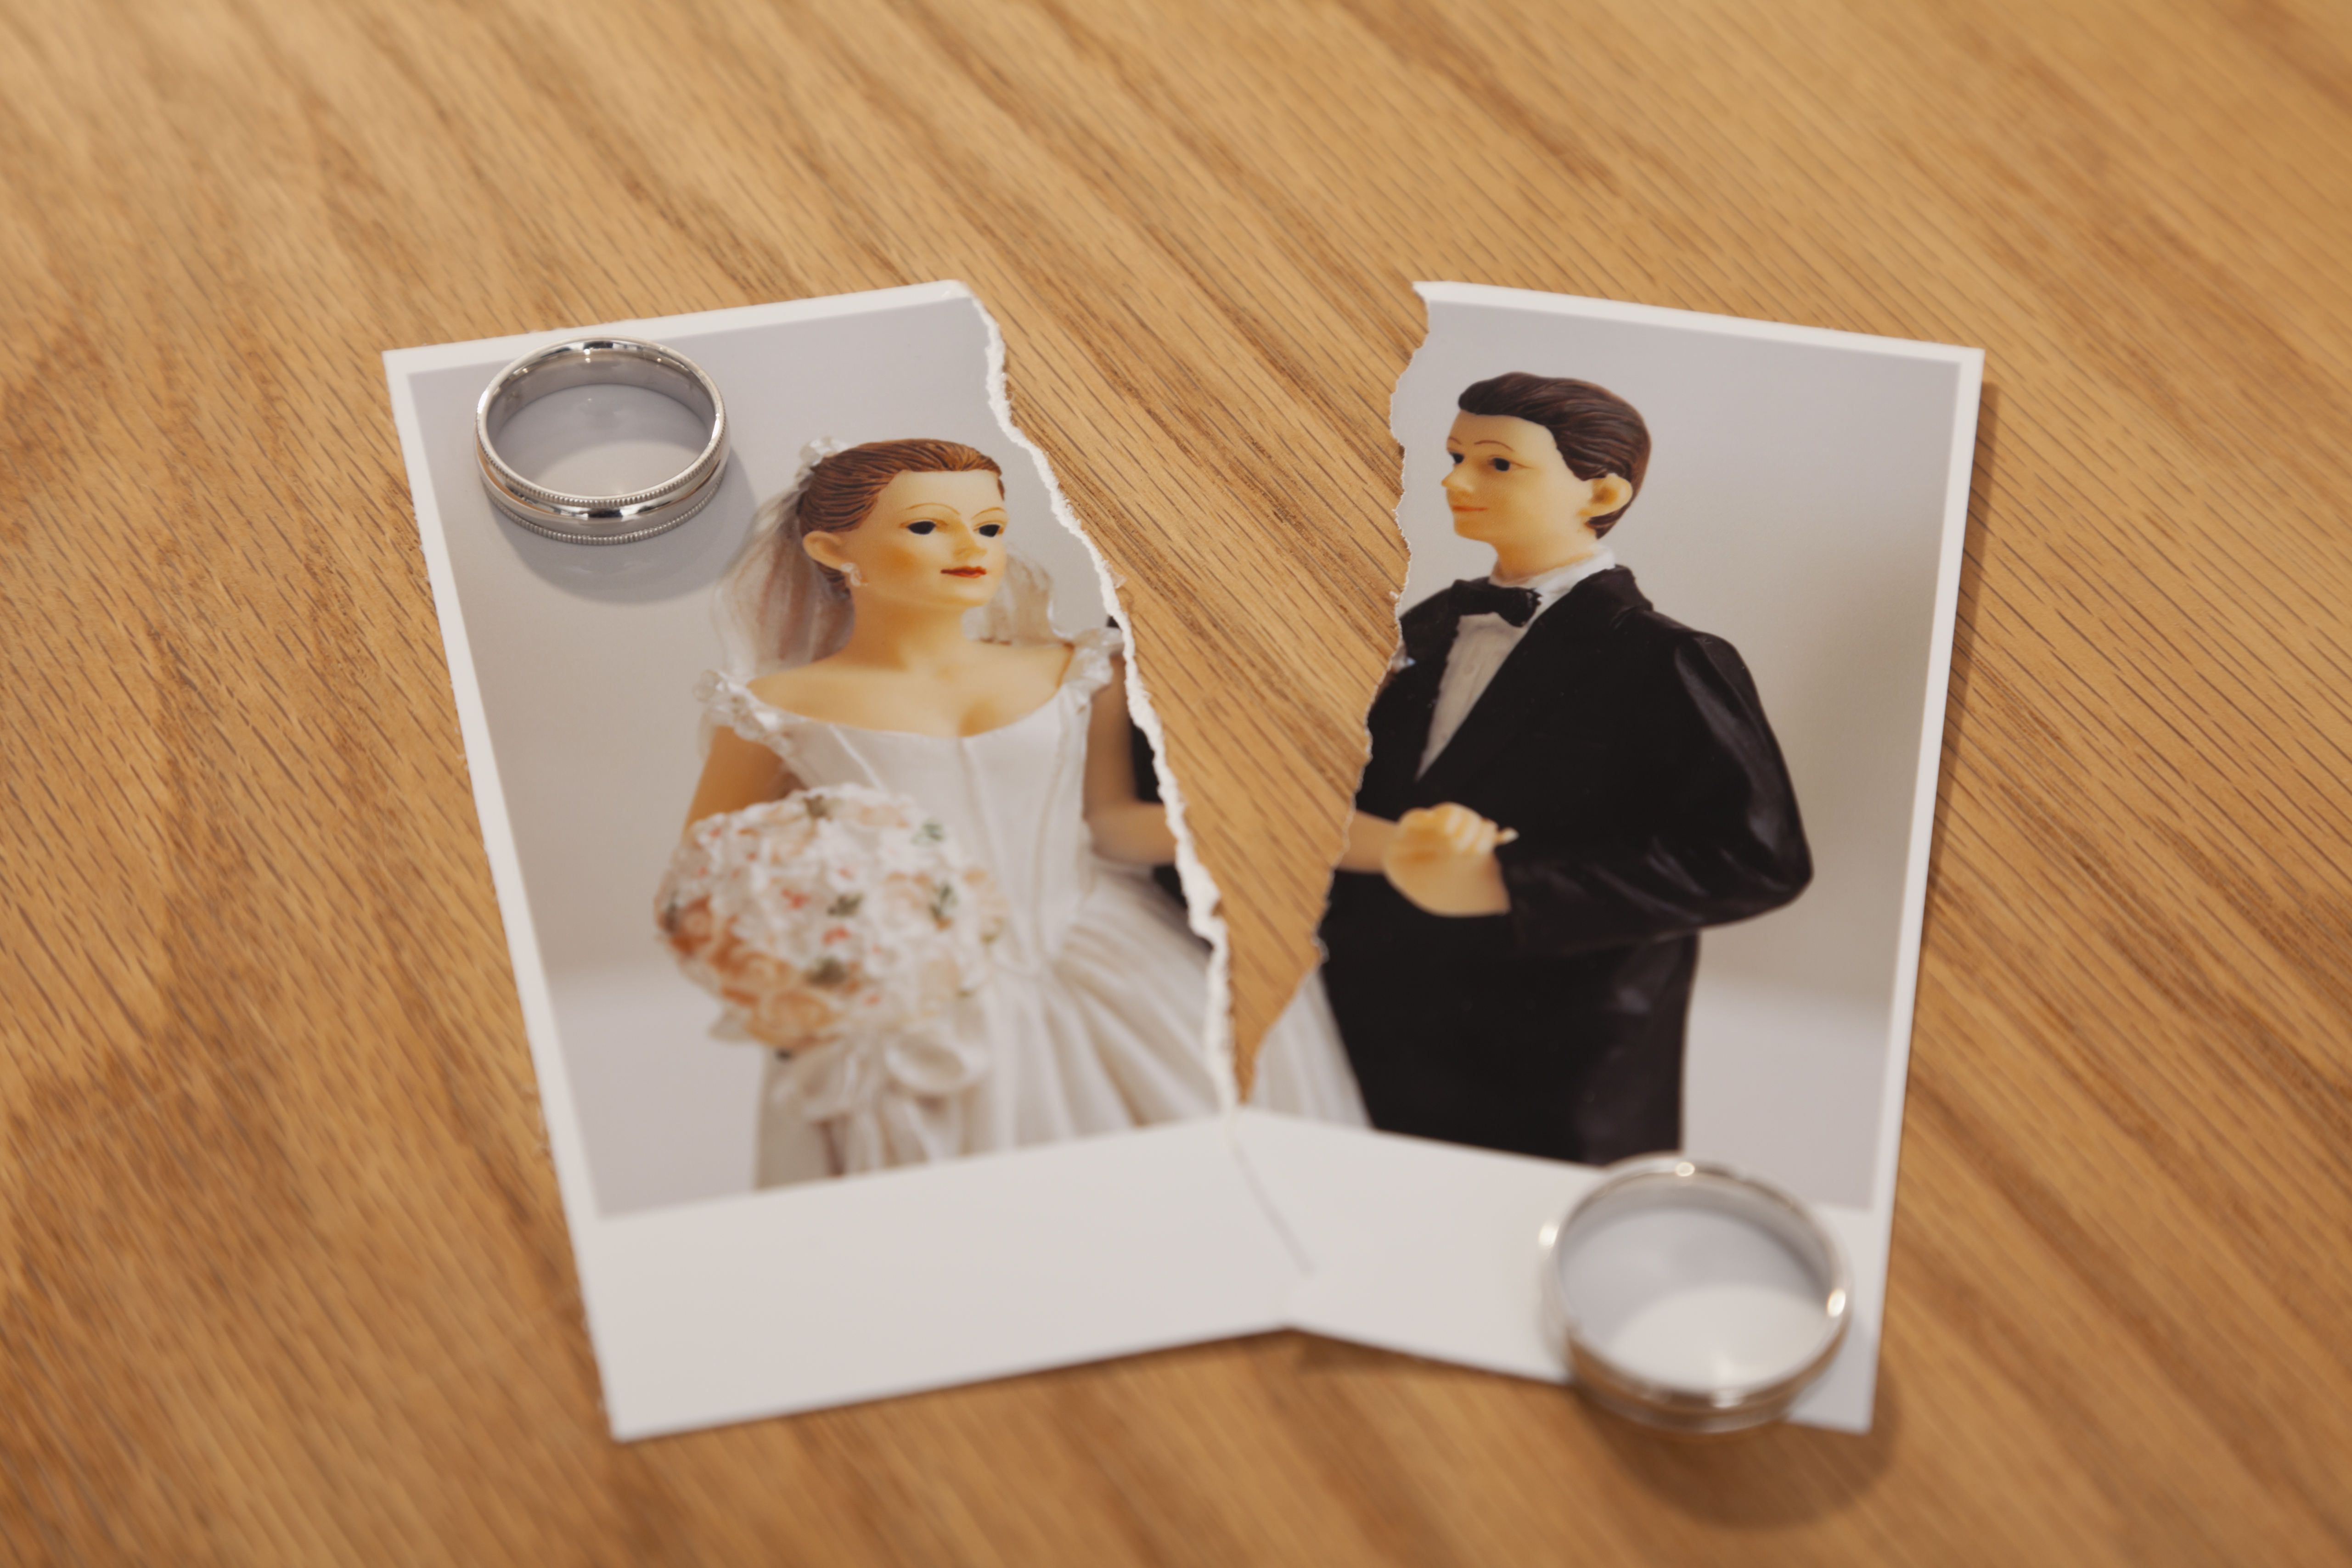 Studio shot of photo of bride and groom figurines torn in half and wedding rings